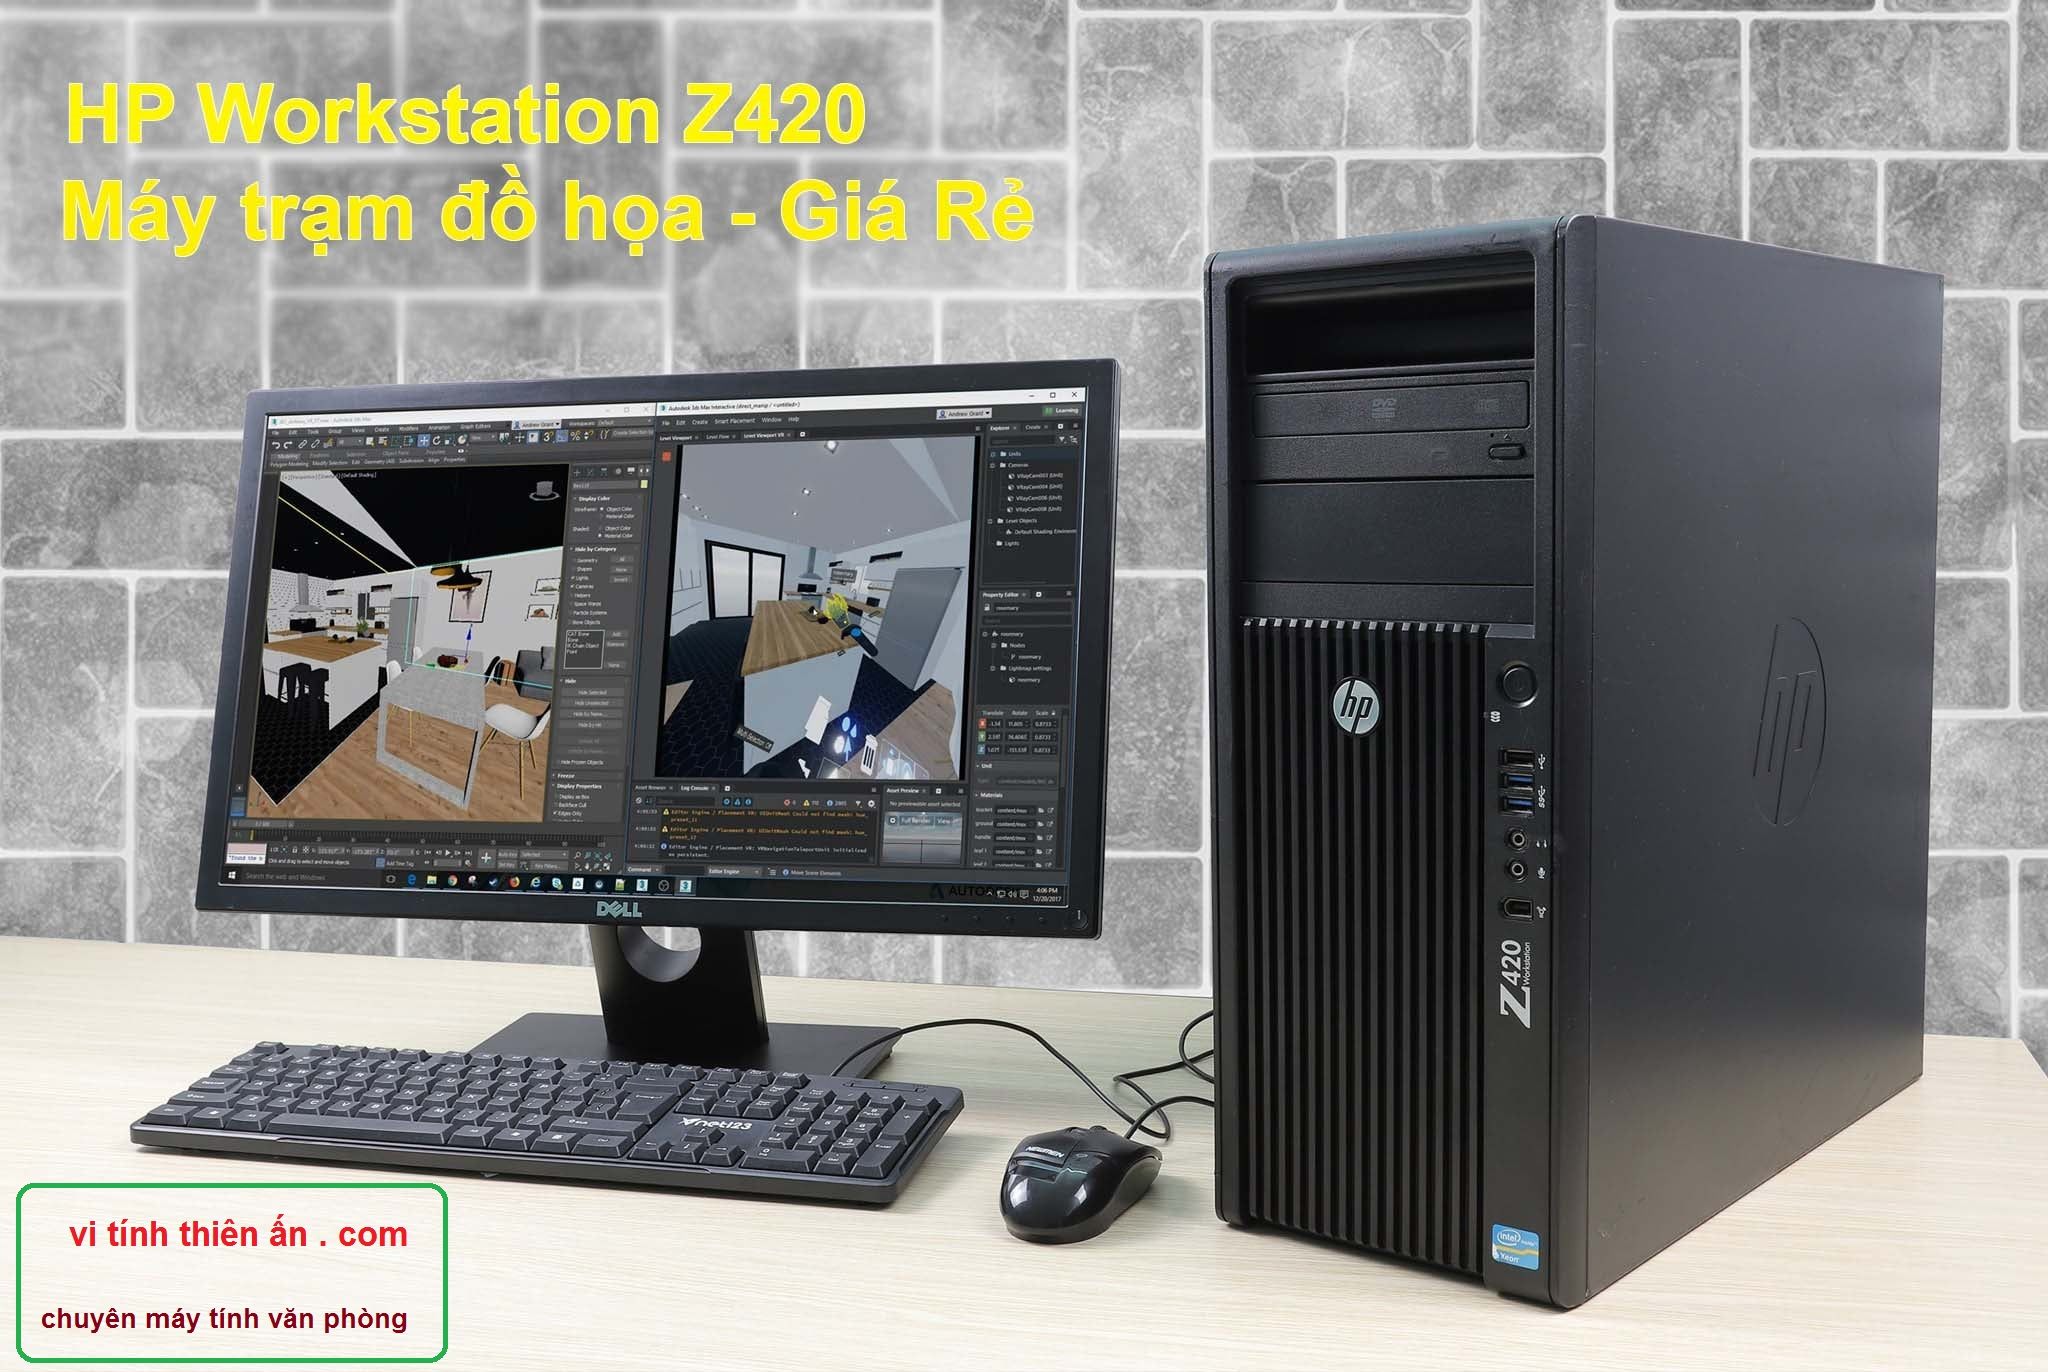 HP Workstation Z420 V2 Xeon E5-1620 V2/ RAM 16GB/ SSD 120GB + HDD 1TB/ VGA Quadro K2000